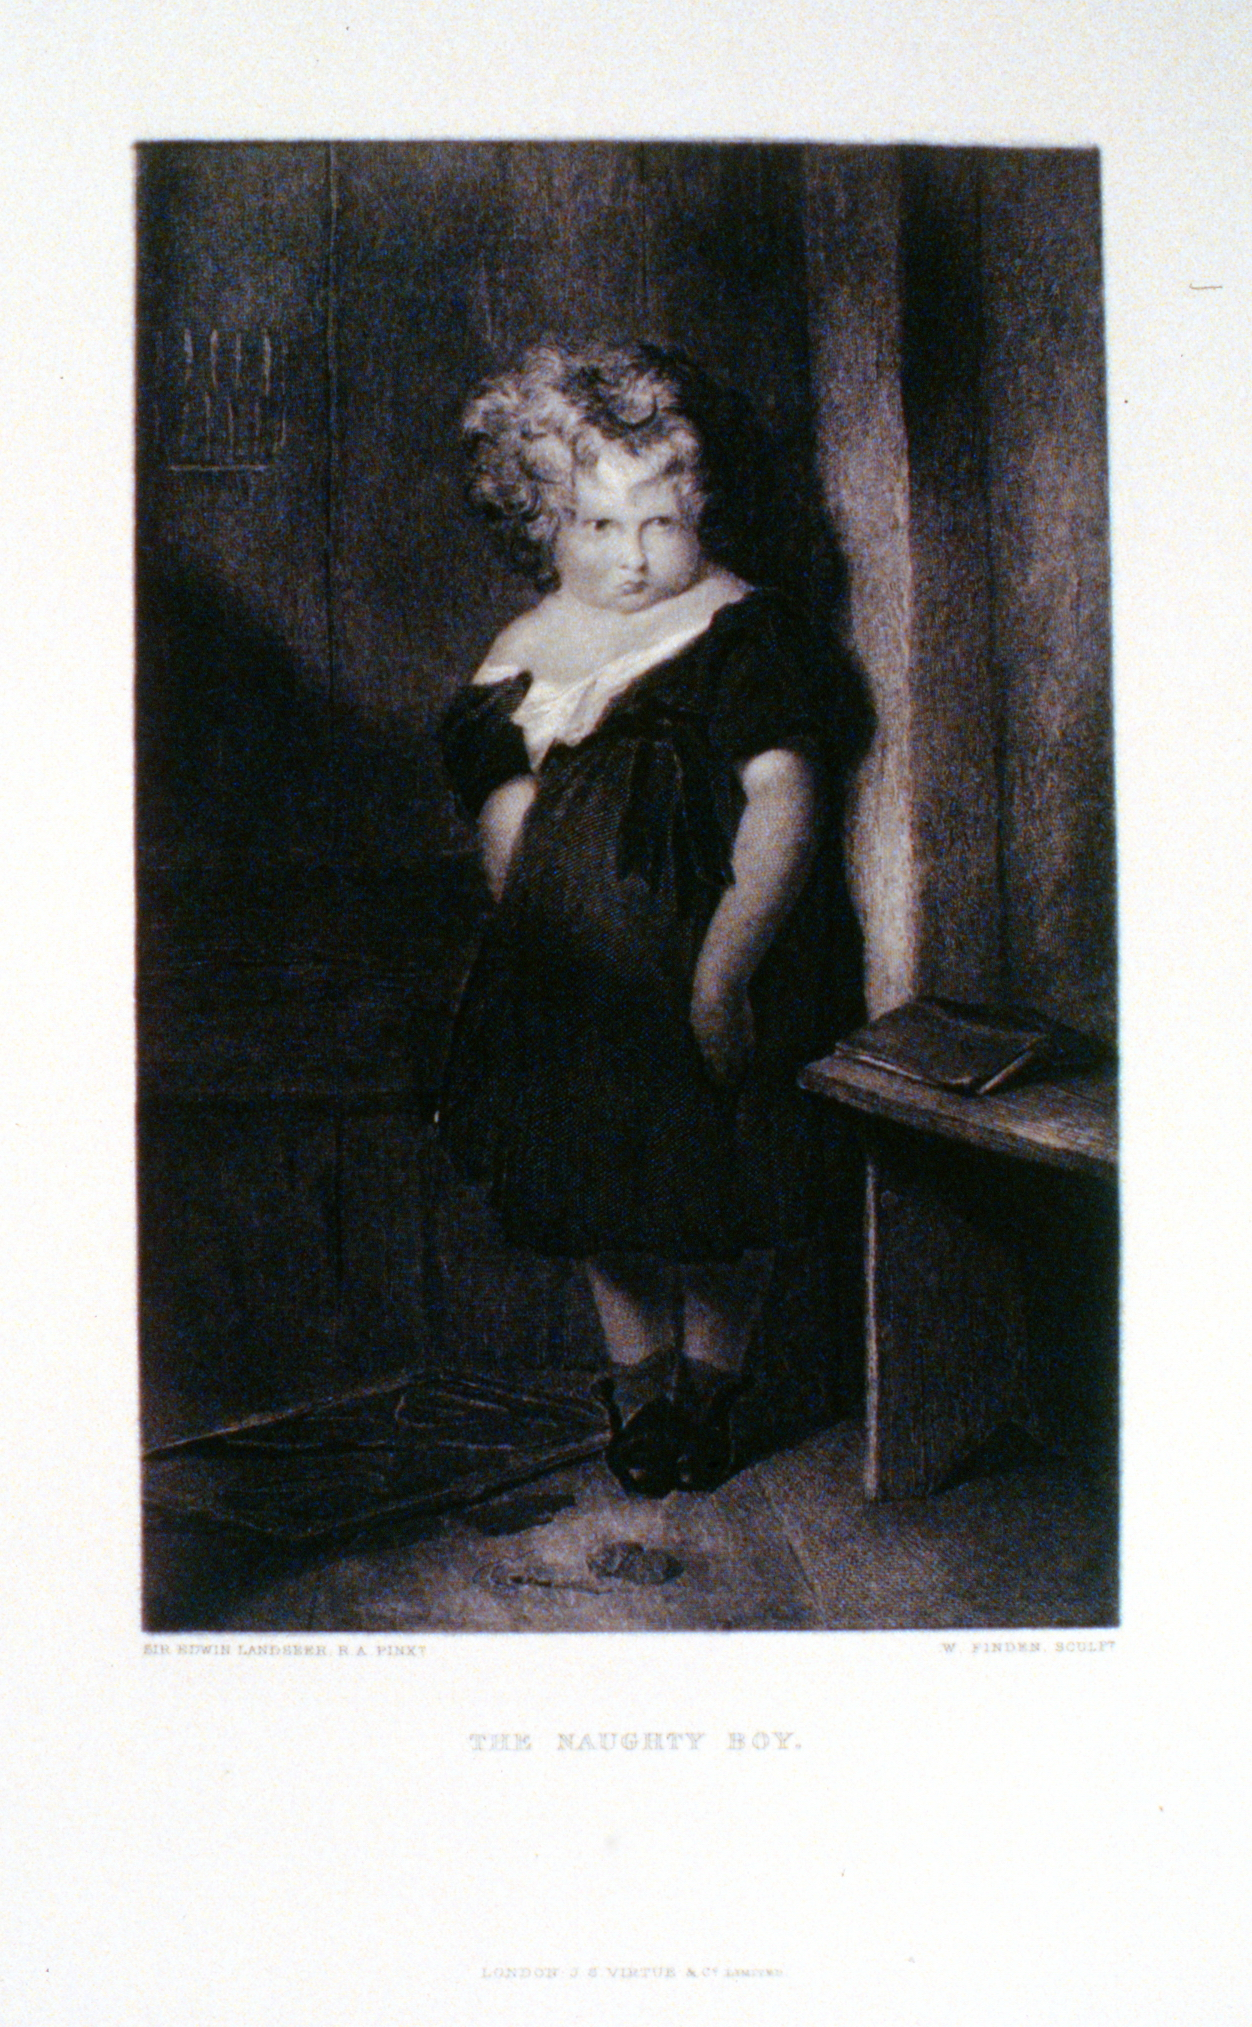 The Naughty Boy , c. late 19th Century, W. Finden, steel engraving, 22.5 cm x 14.7 cm, 1996.08.36, gift of Yvonne Adams